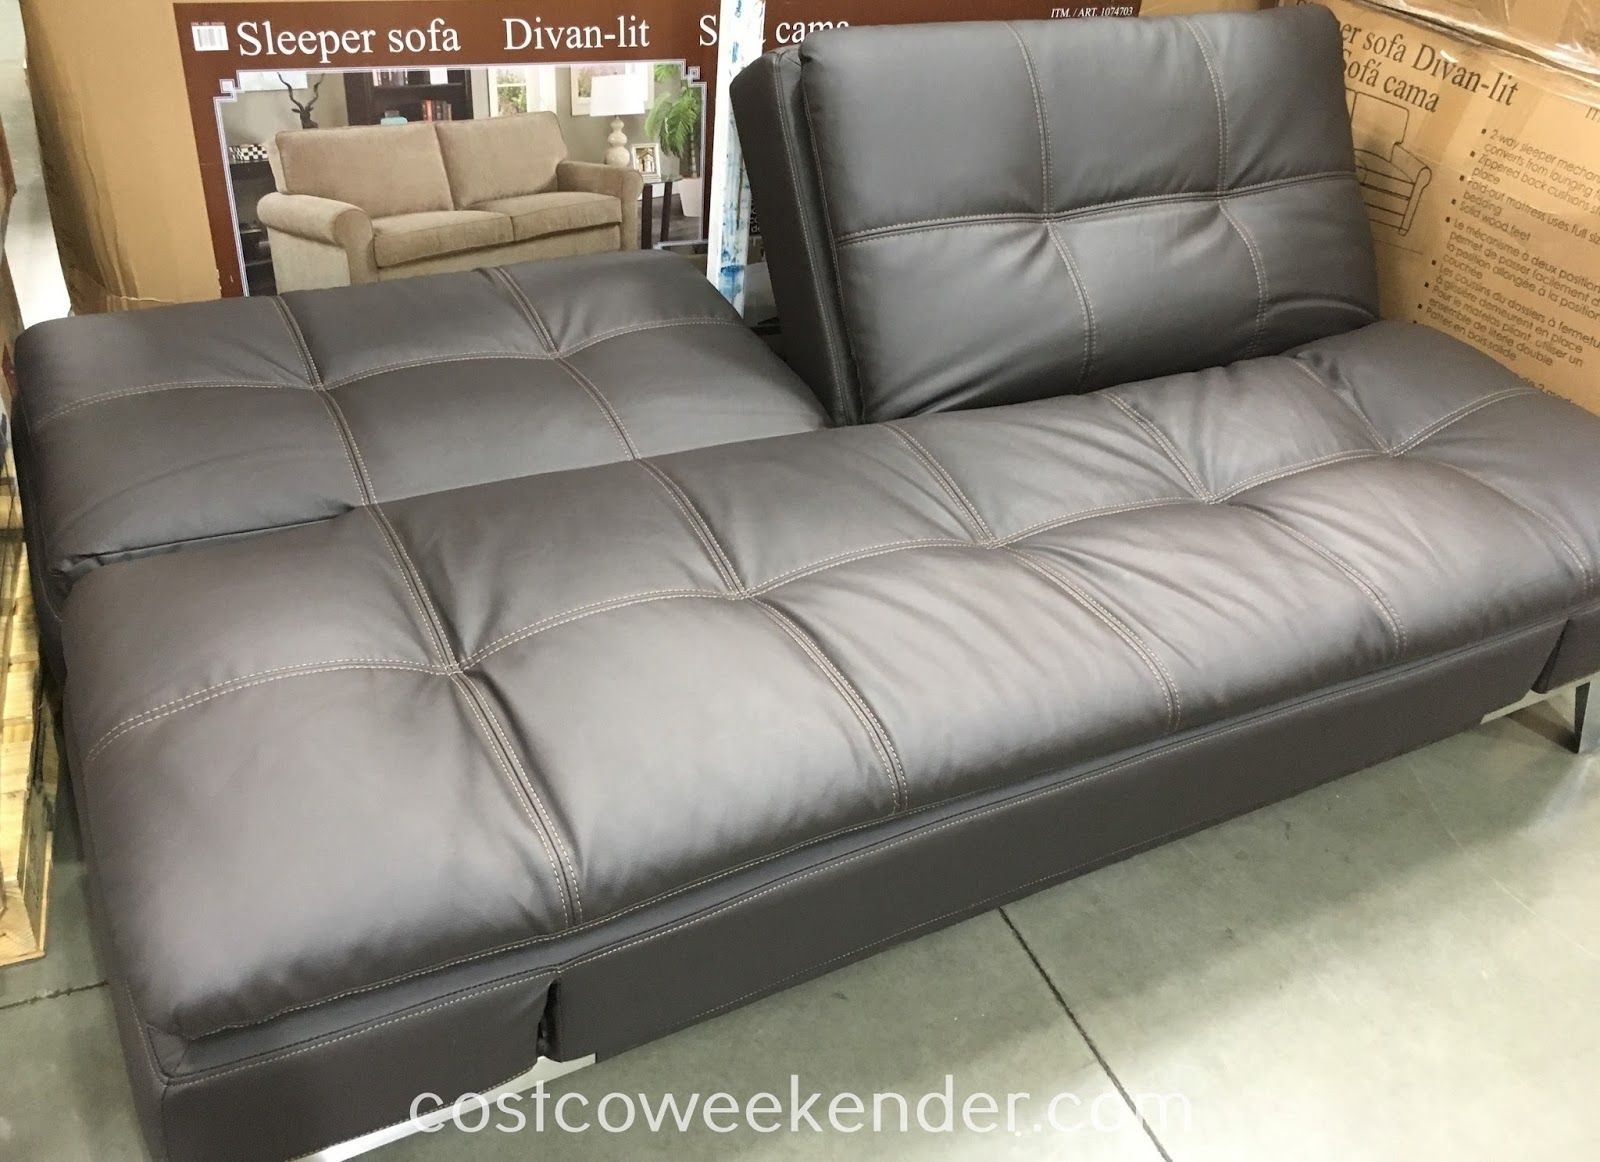 Lifestyle Solutions Euro Lounger Item 1074710 At Costco $400 | For within Travis Dk Grey Leather 6 Piece Power Reclining Sectionals With Power Headrest & Usb (Image 12 of 30)